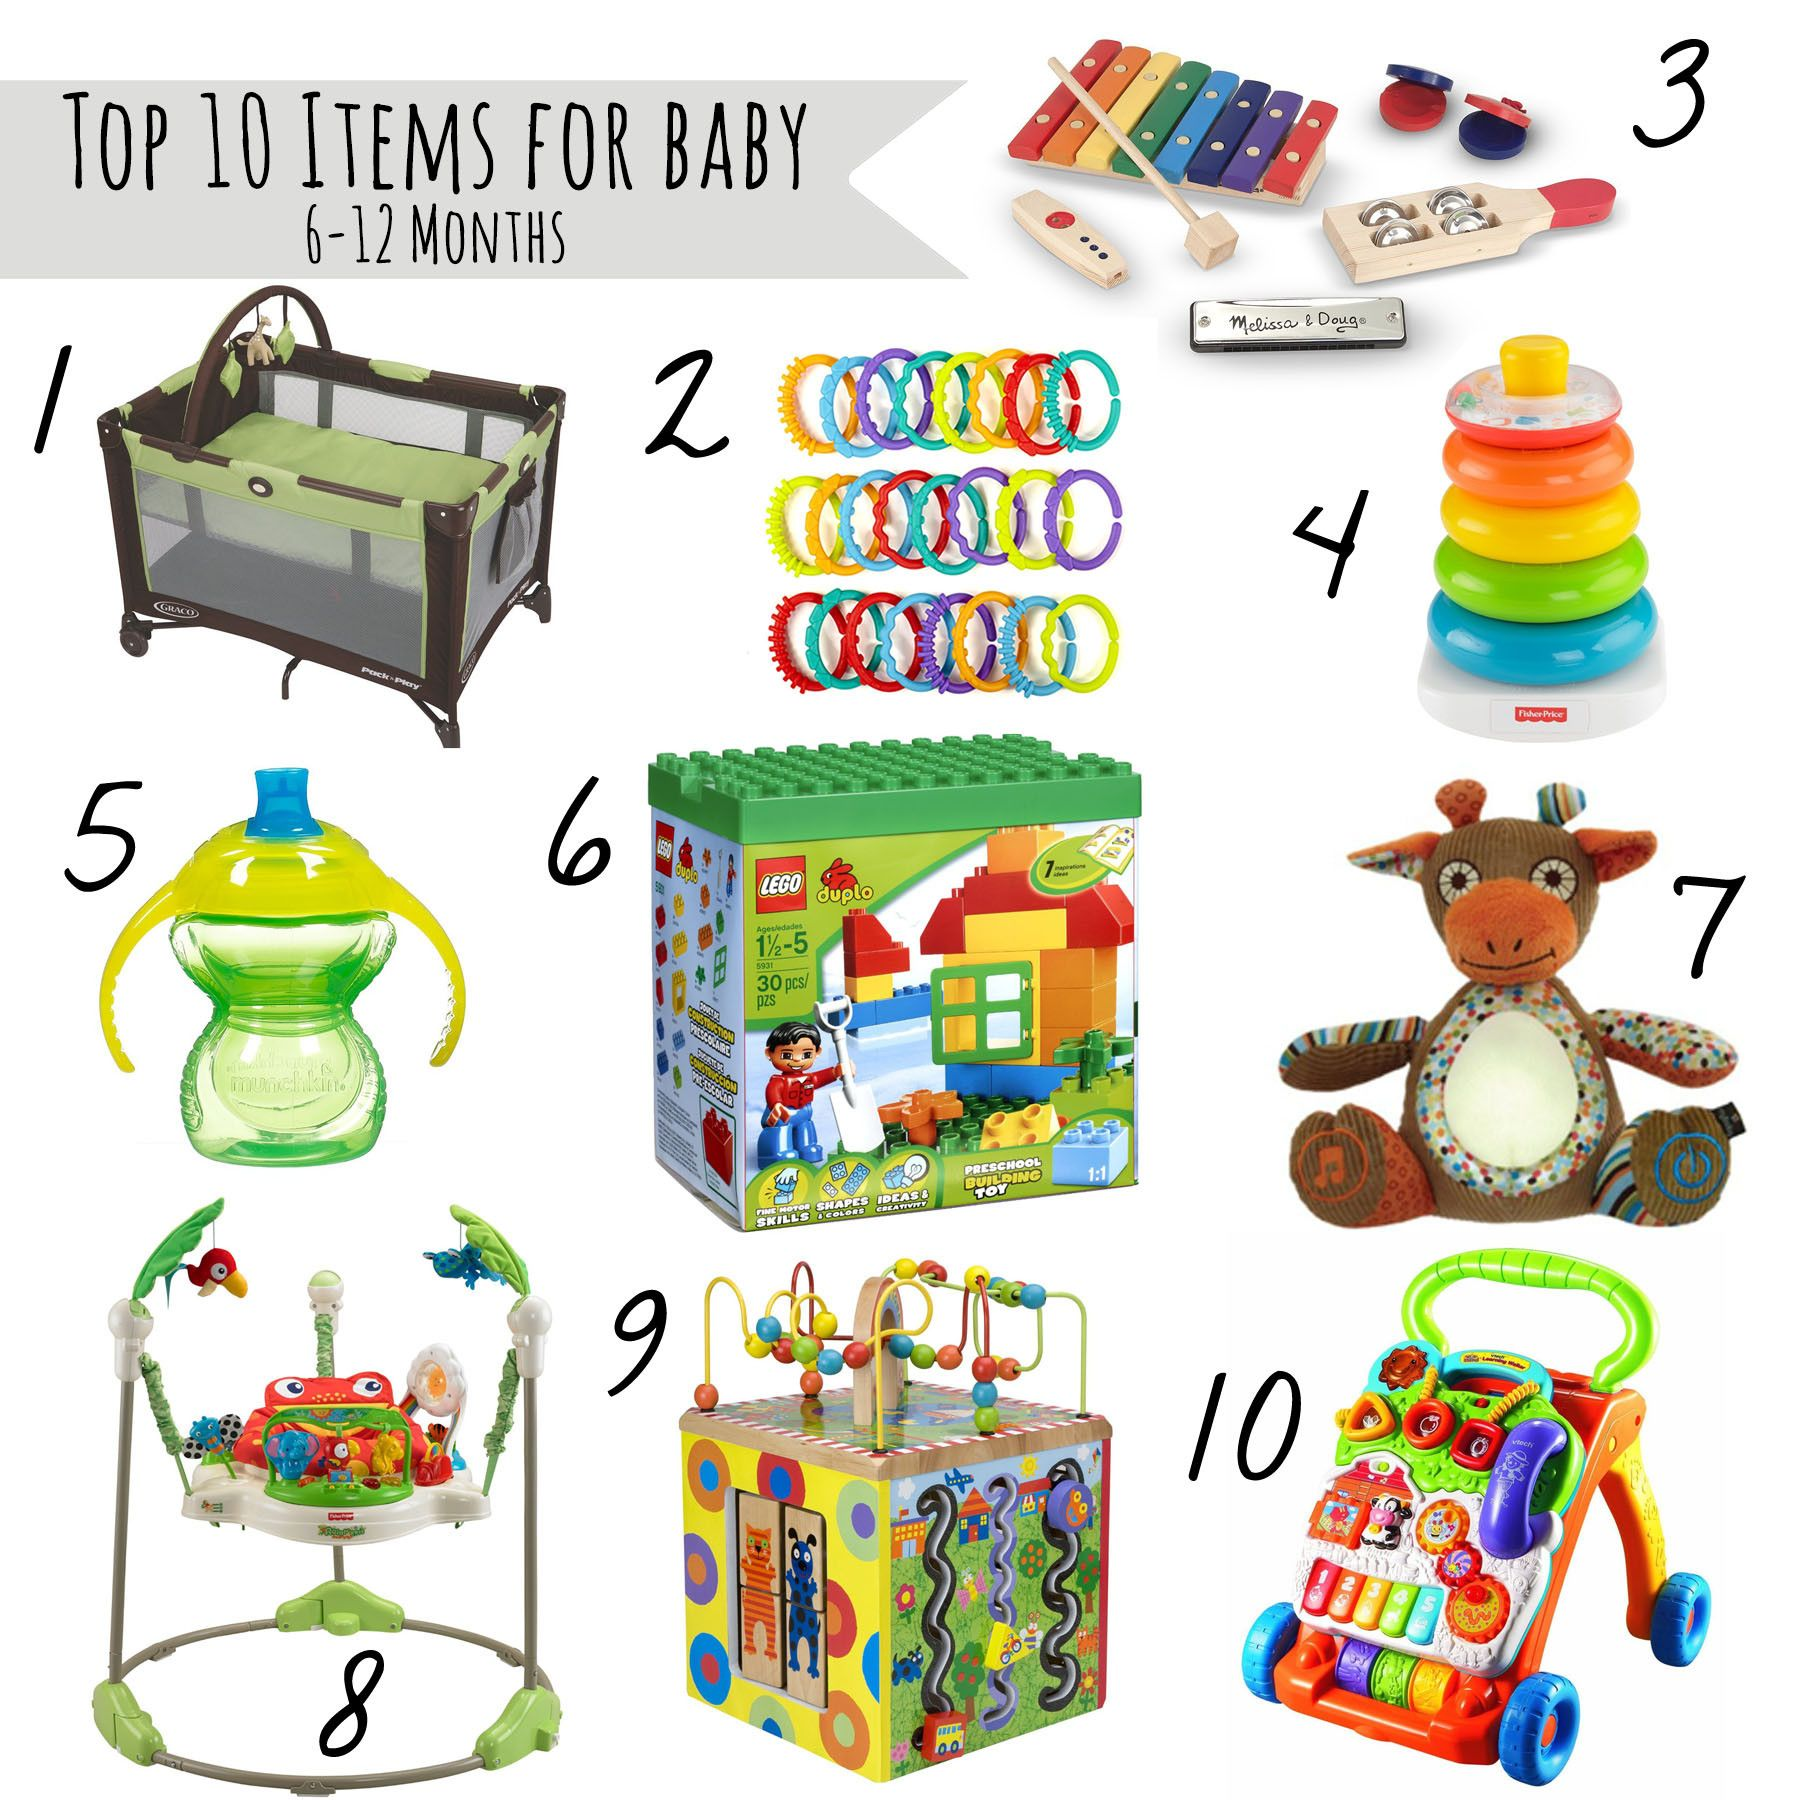 Permalink to The Best Of toys for Babies 6 12 Months Pics